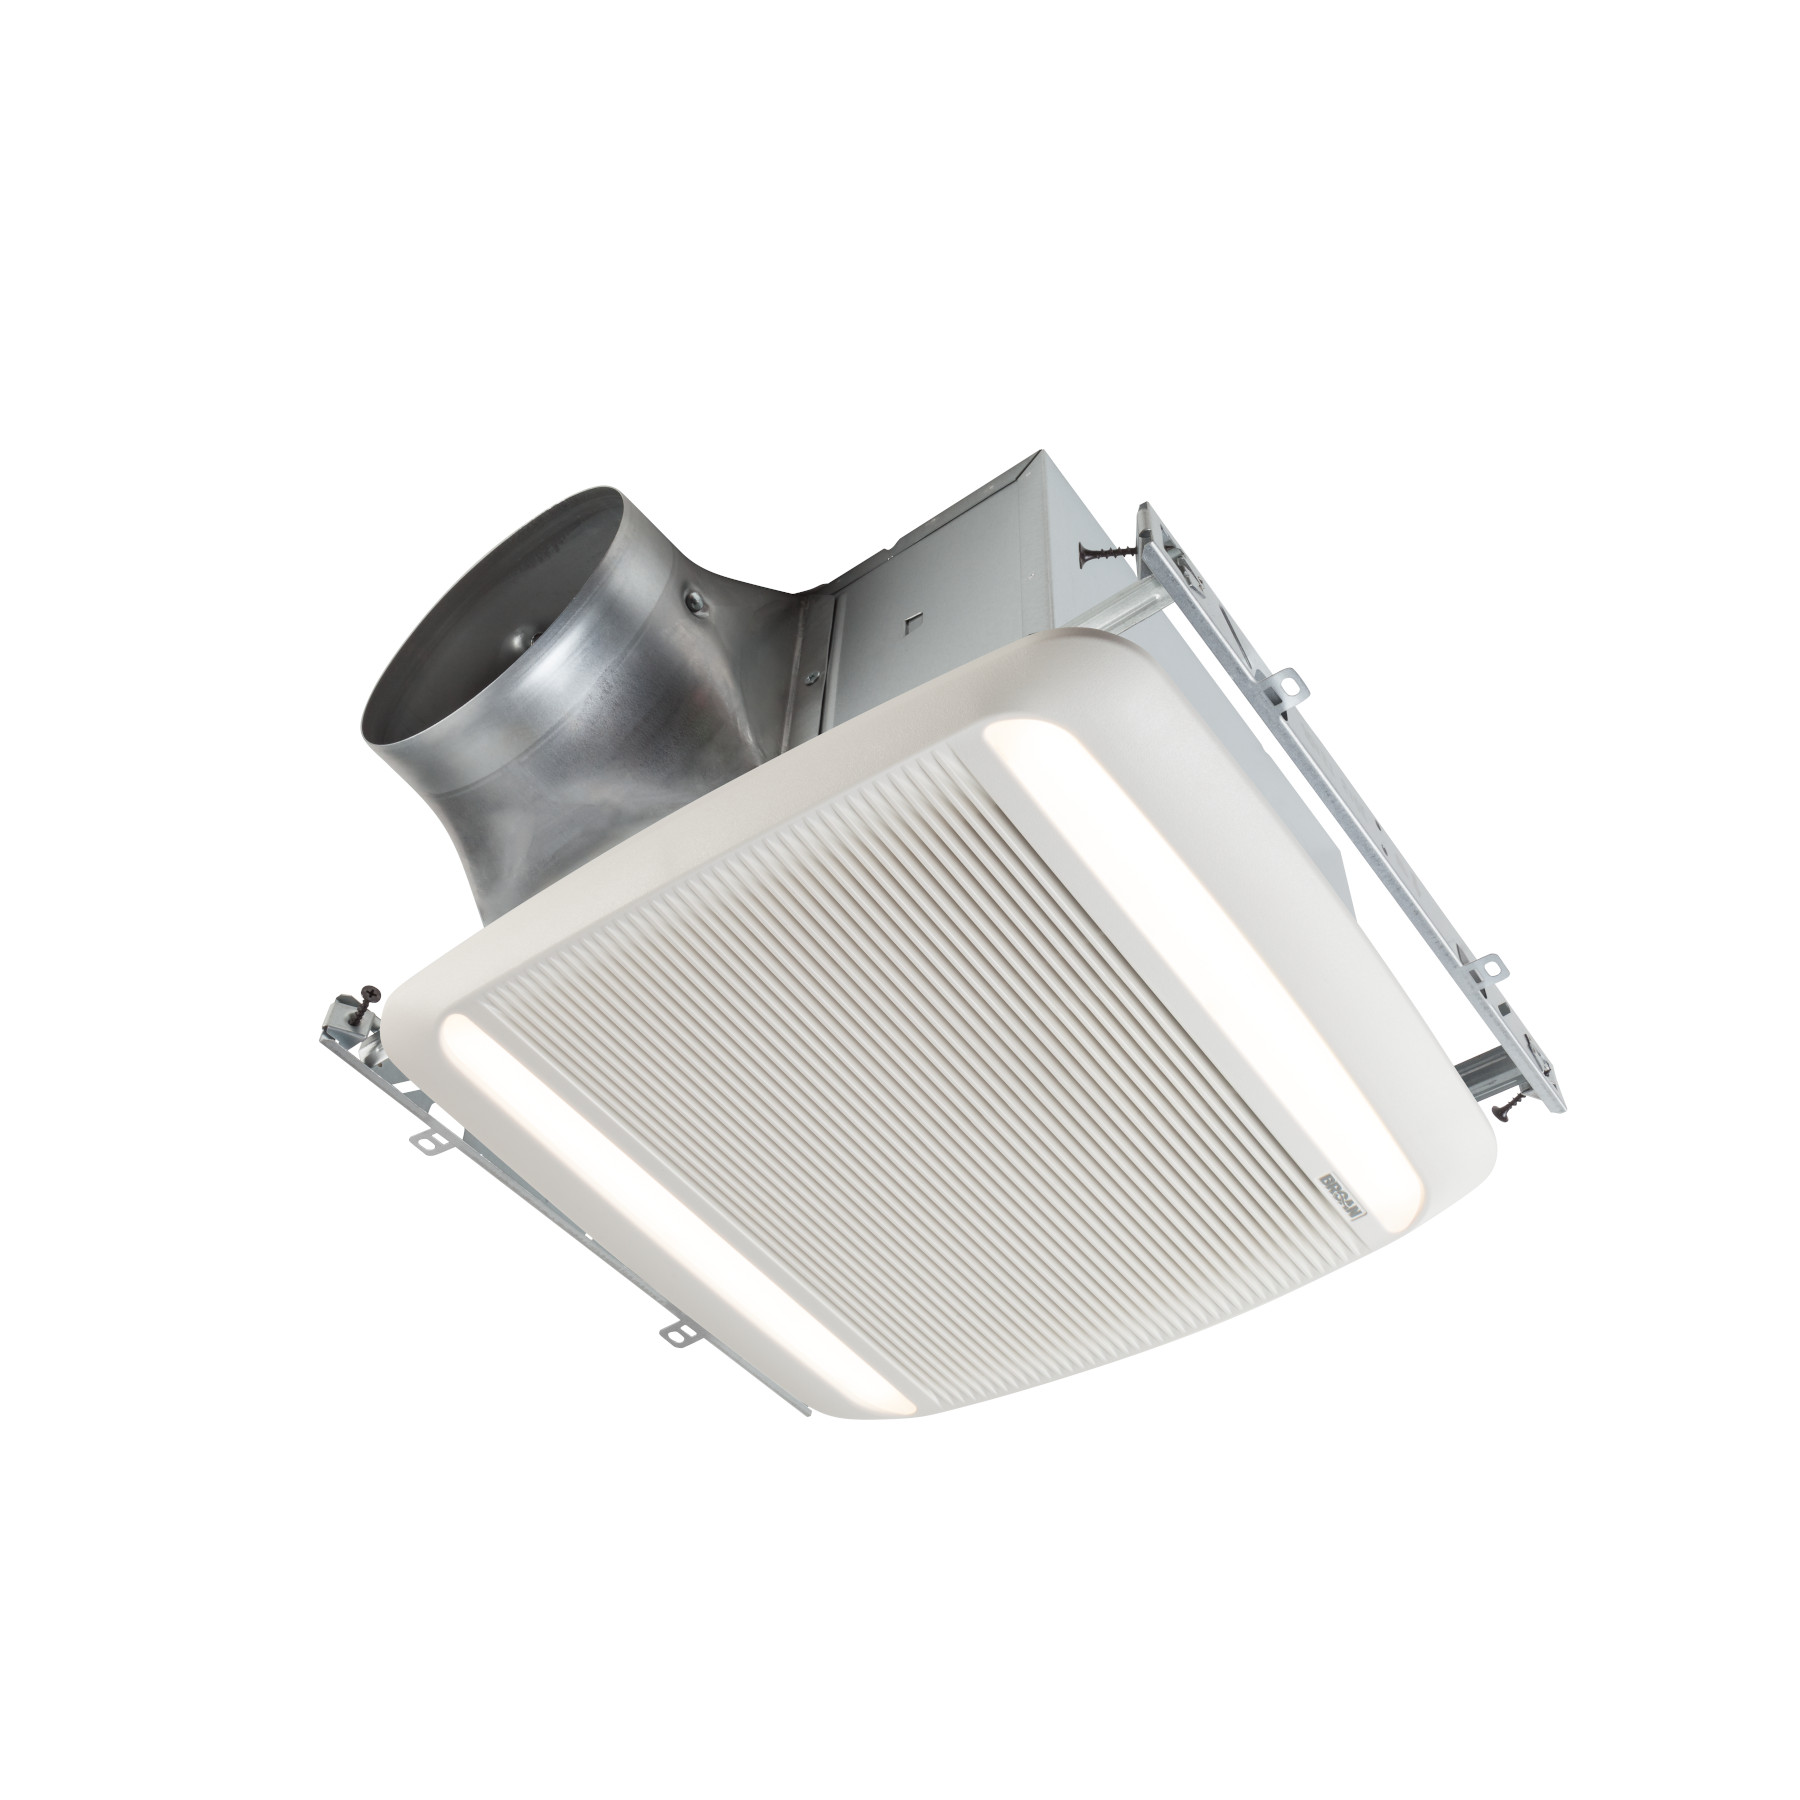 Rb110l1 Broan Ultra Pro Series 110 Cfm Ventilation Fan Led Light 0 8 Sones Energy Star Certified